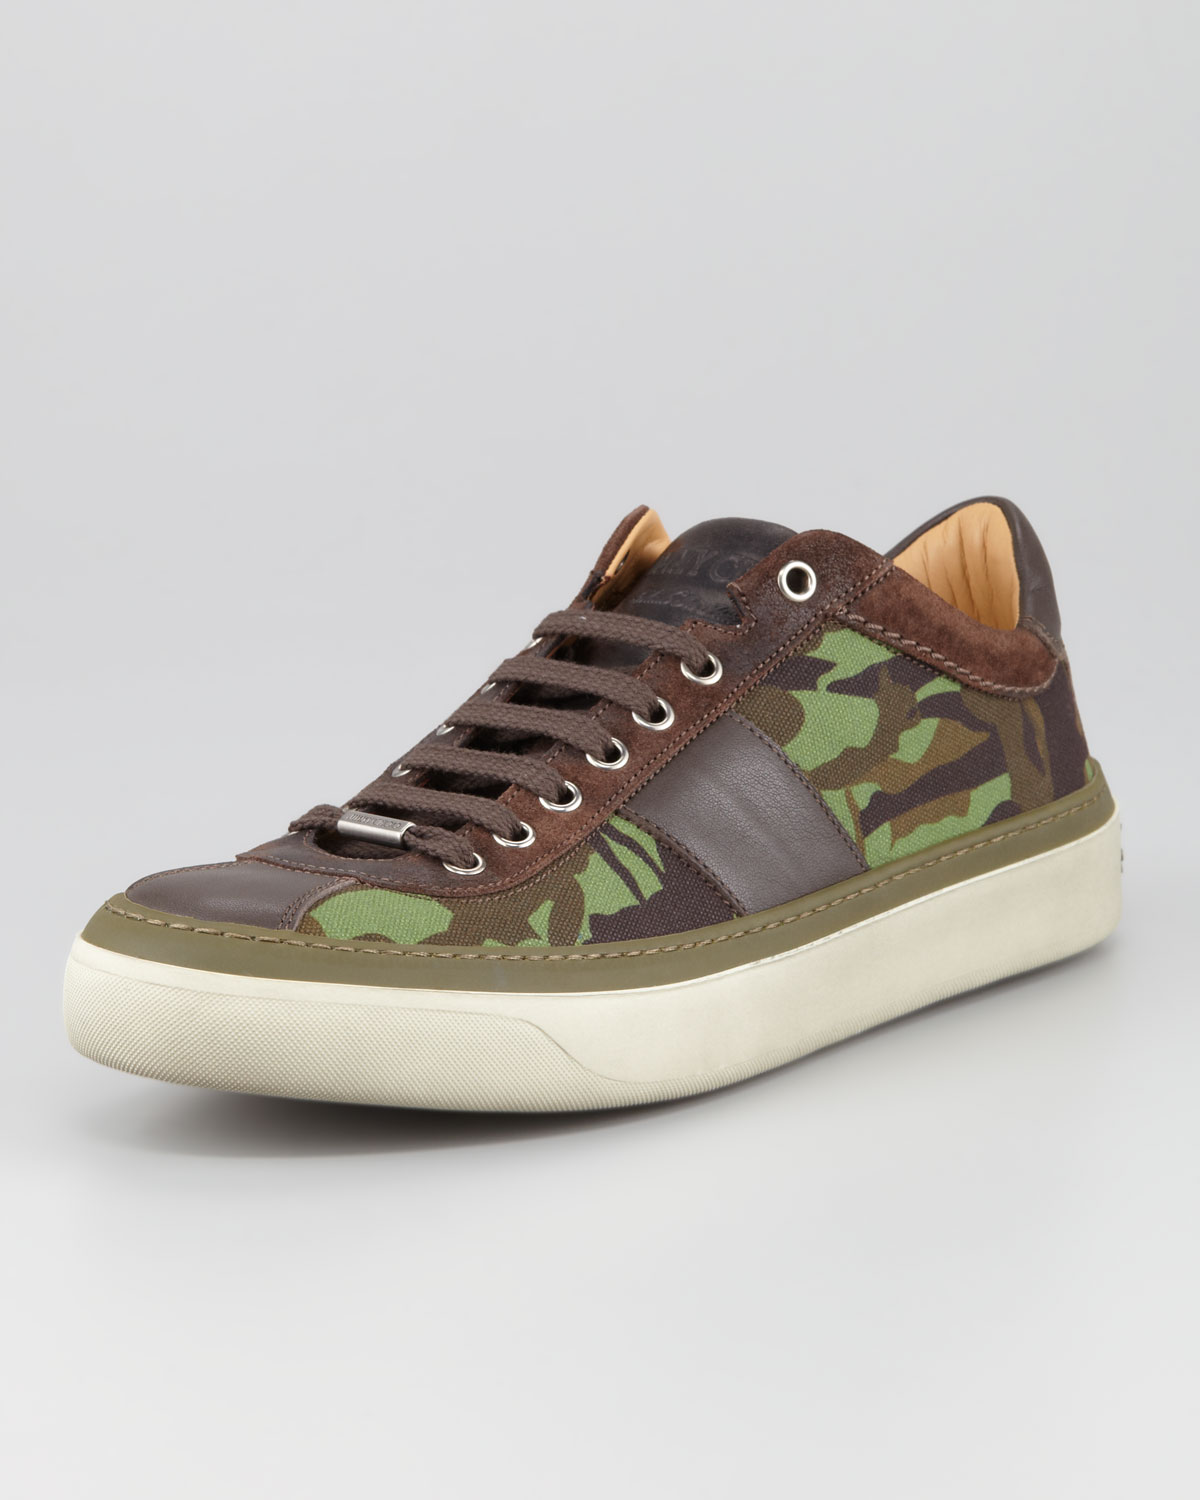 jimmy choo portman camoprint lowtop sneaker in multicolor for men green lyst. Black Bedroom Furniture Sets. Home Design Ideas